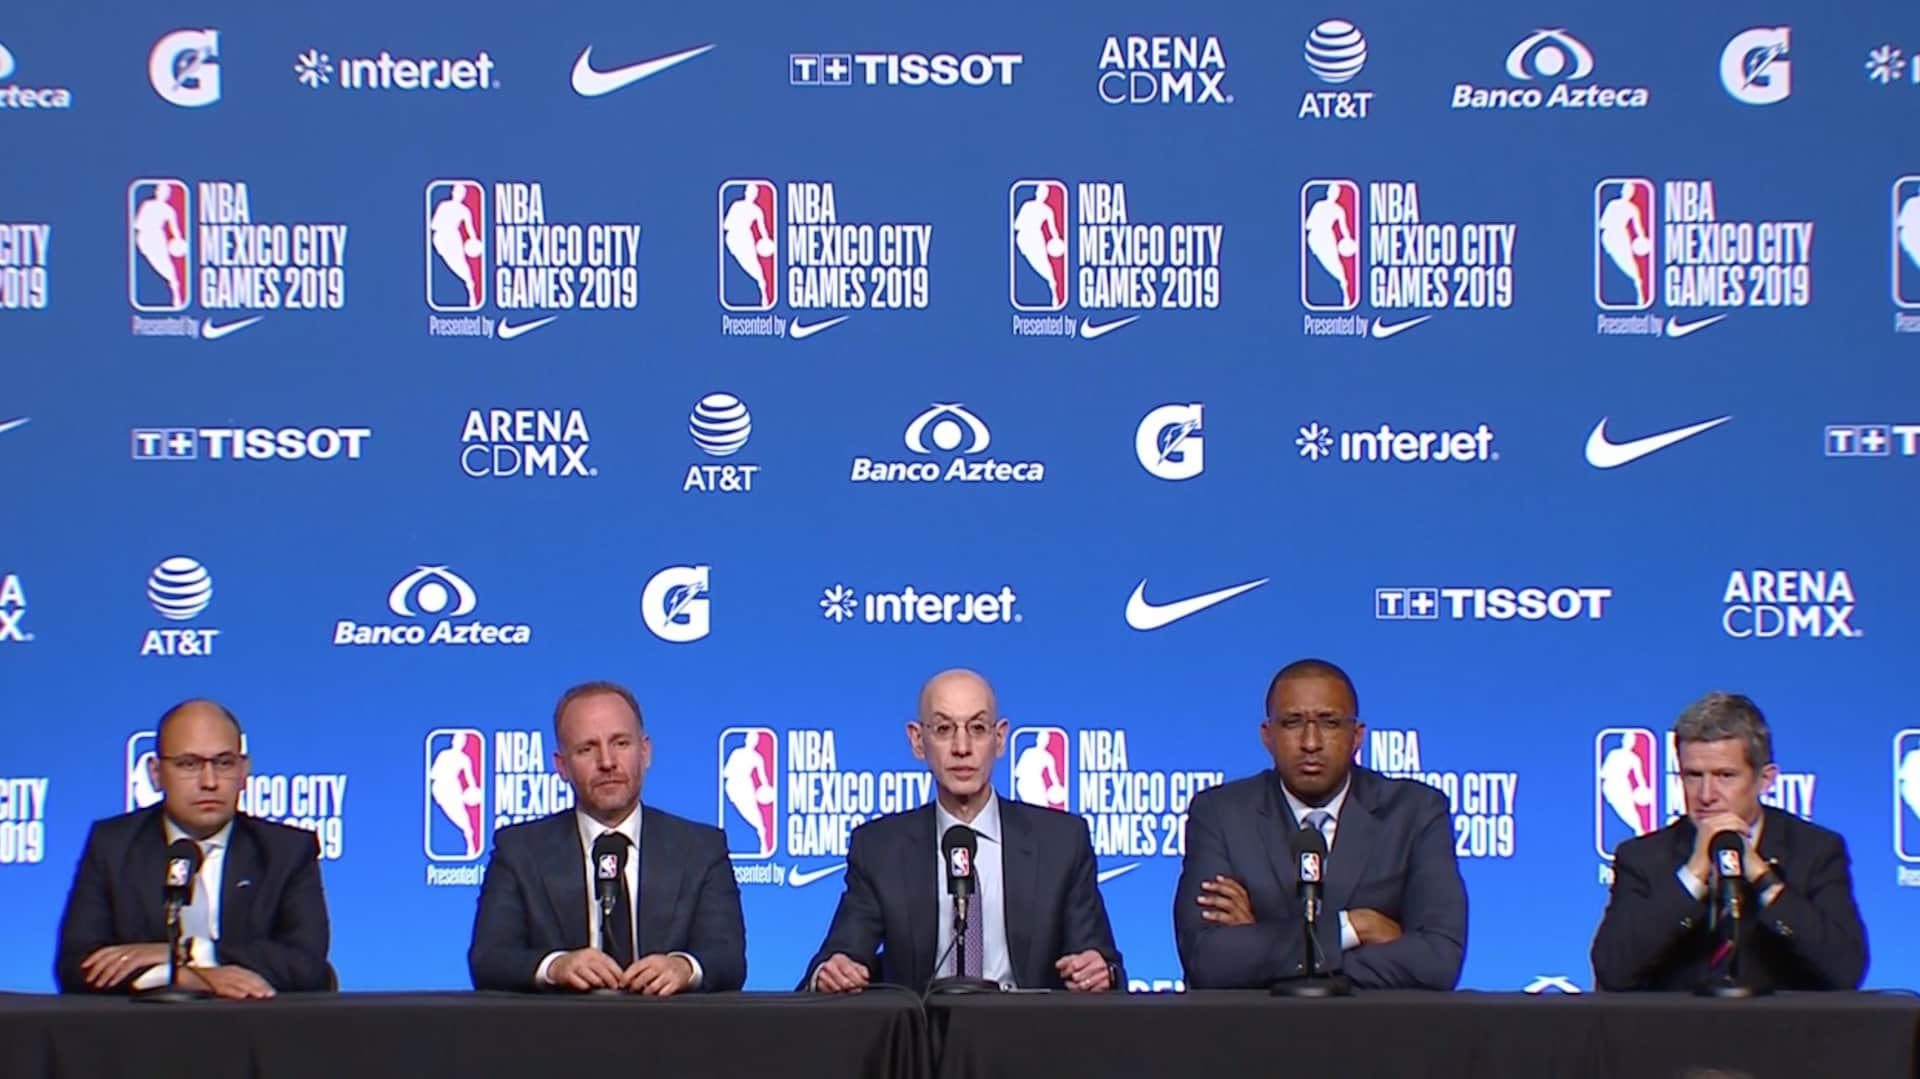 NBA G League expands to Mexico City with landmark partnership with Capitanes